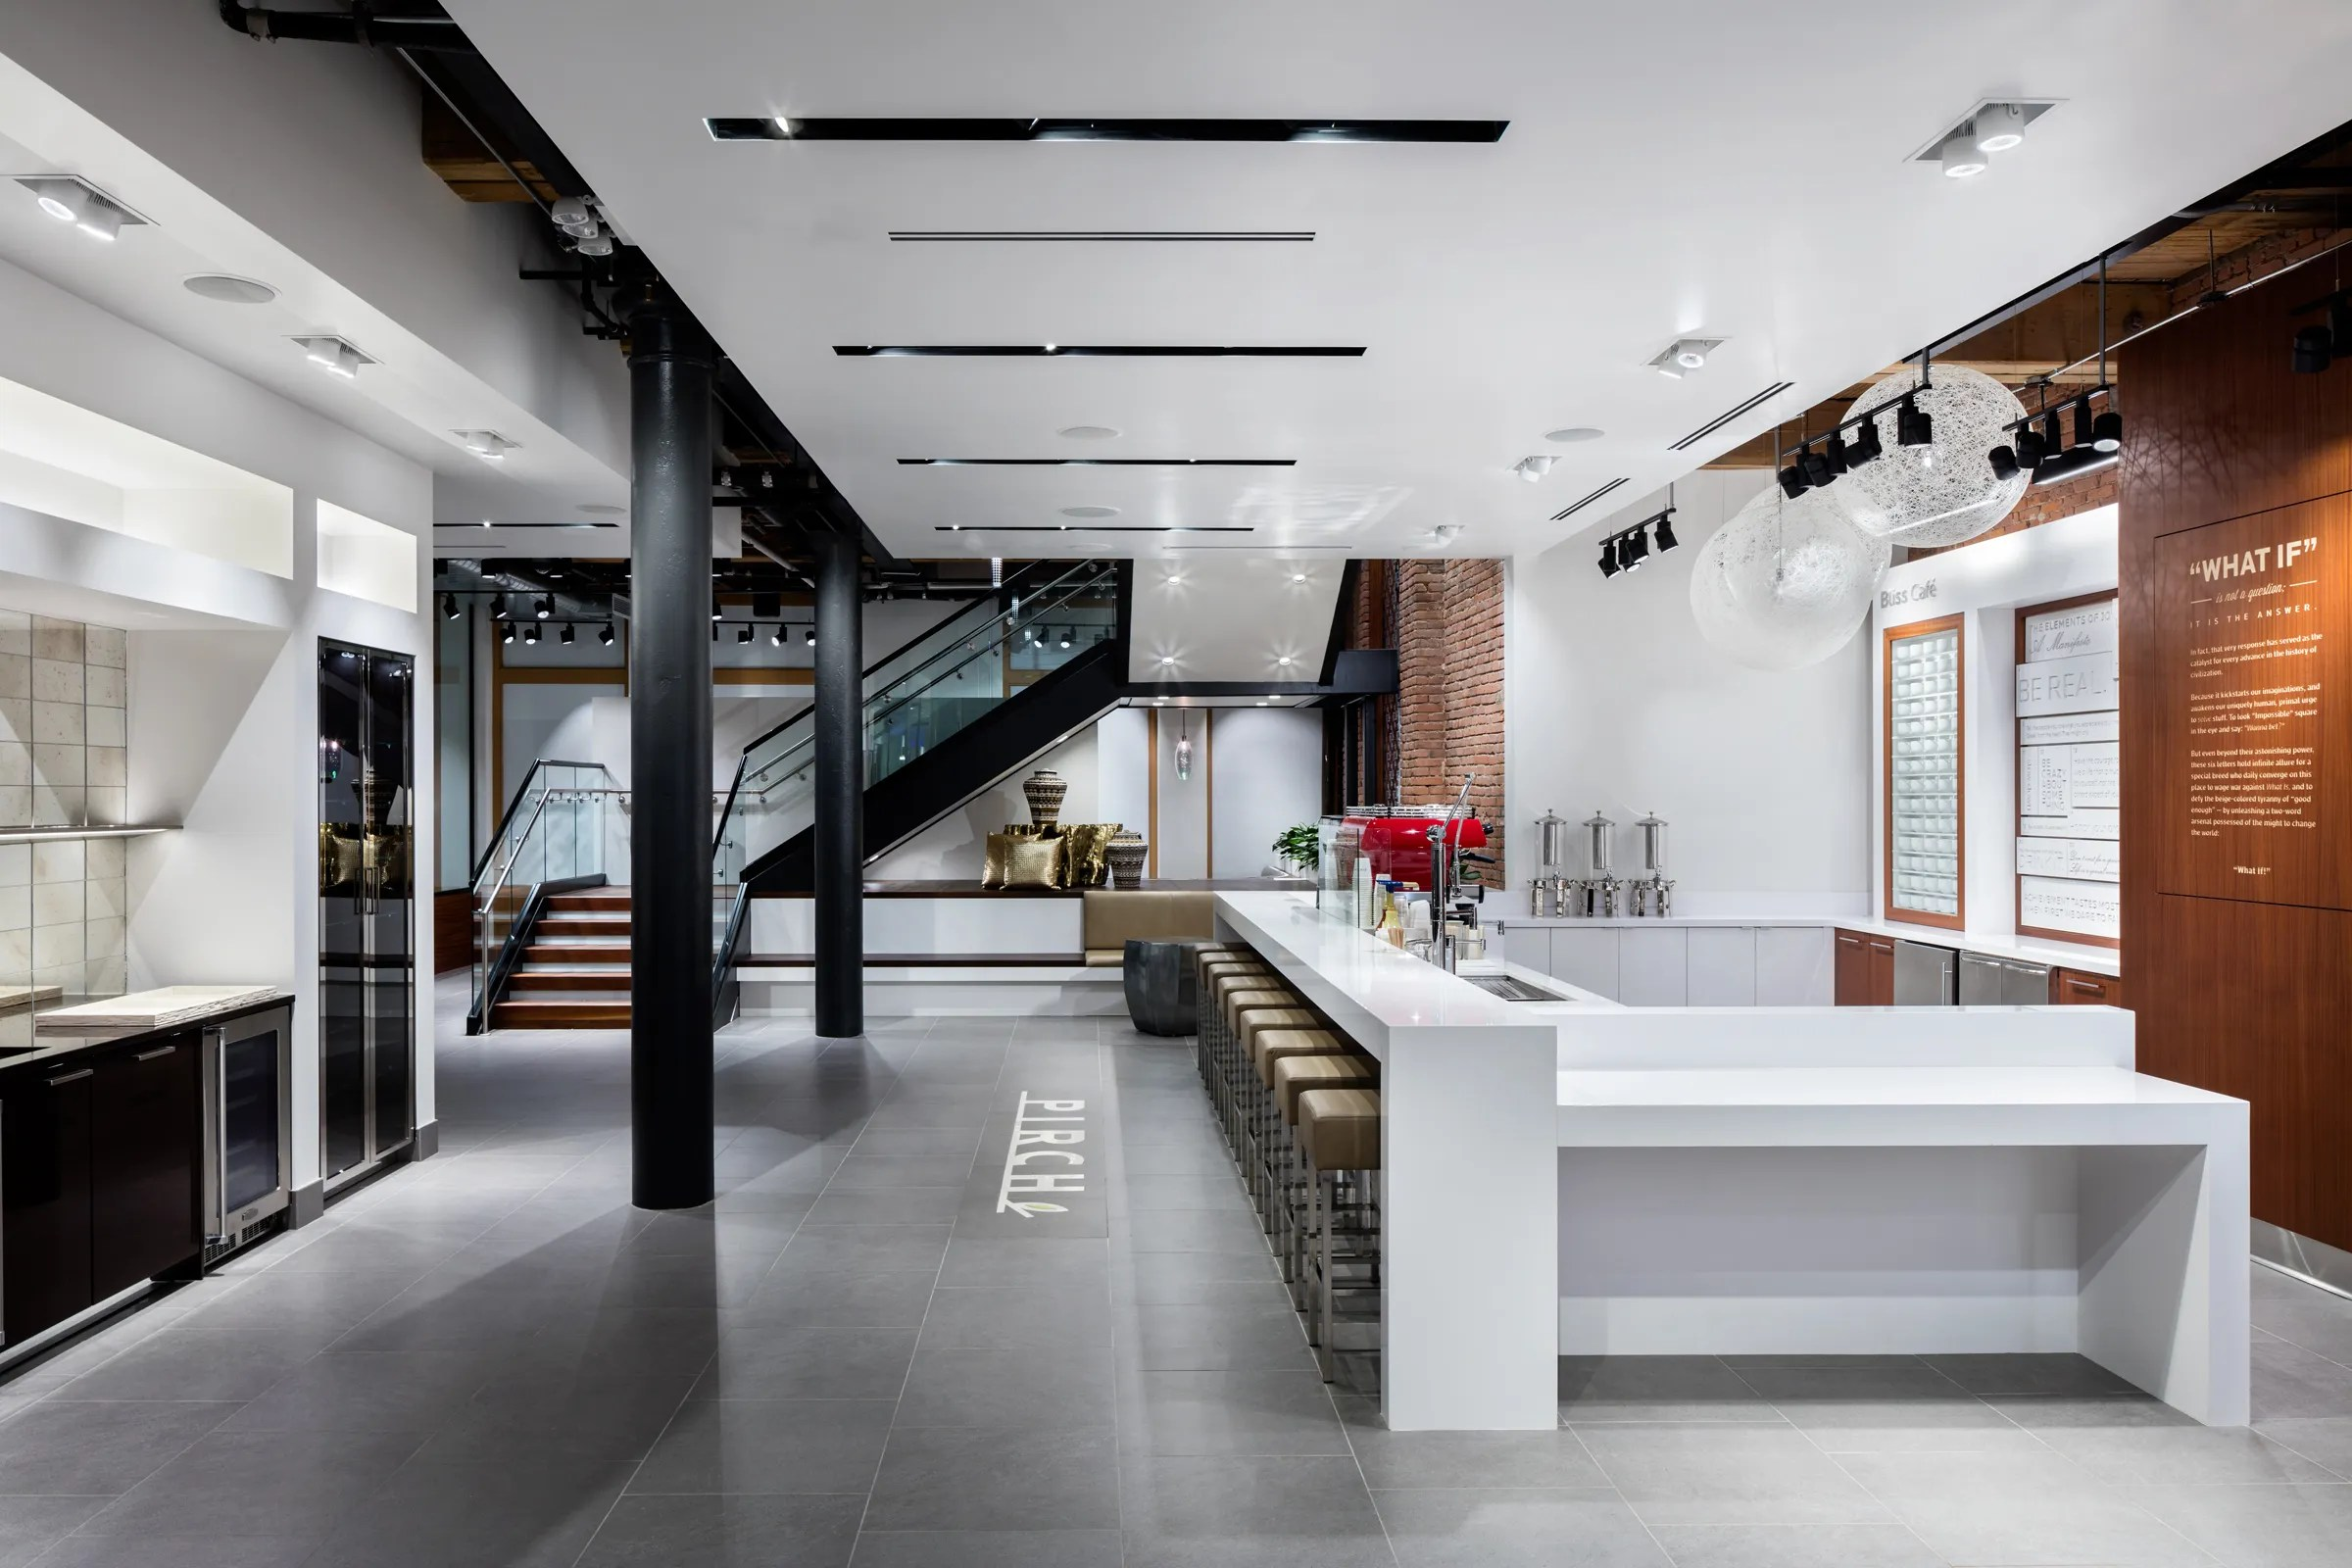 home showroom pirch opens in new york | architectural digest